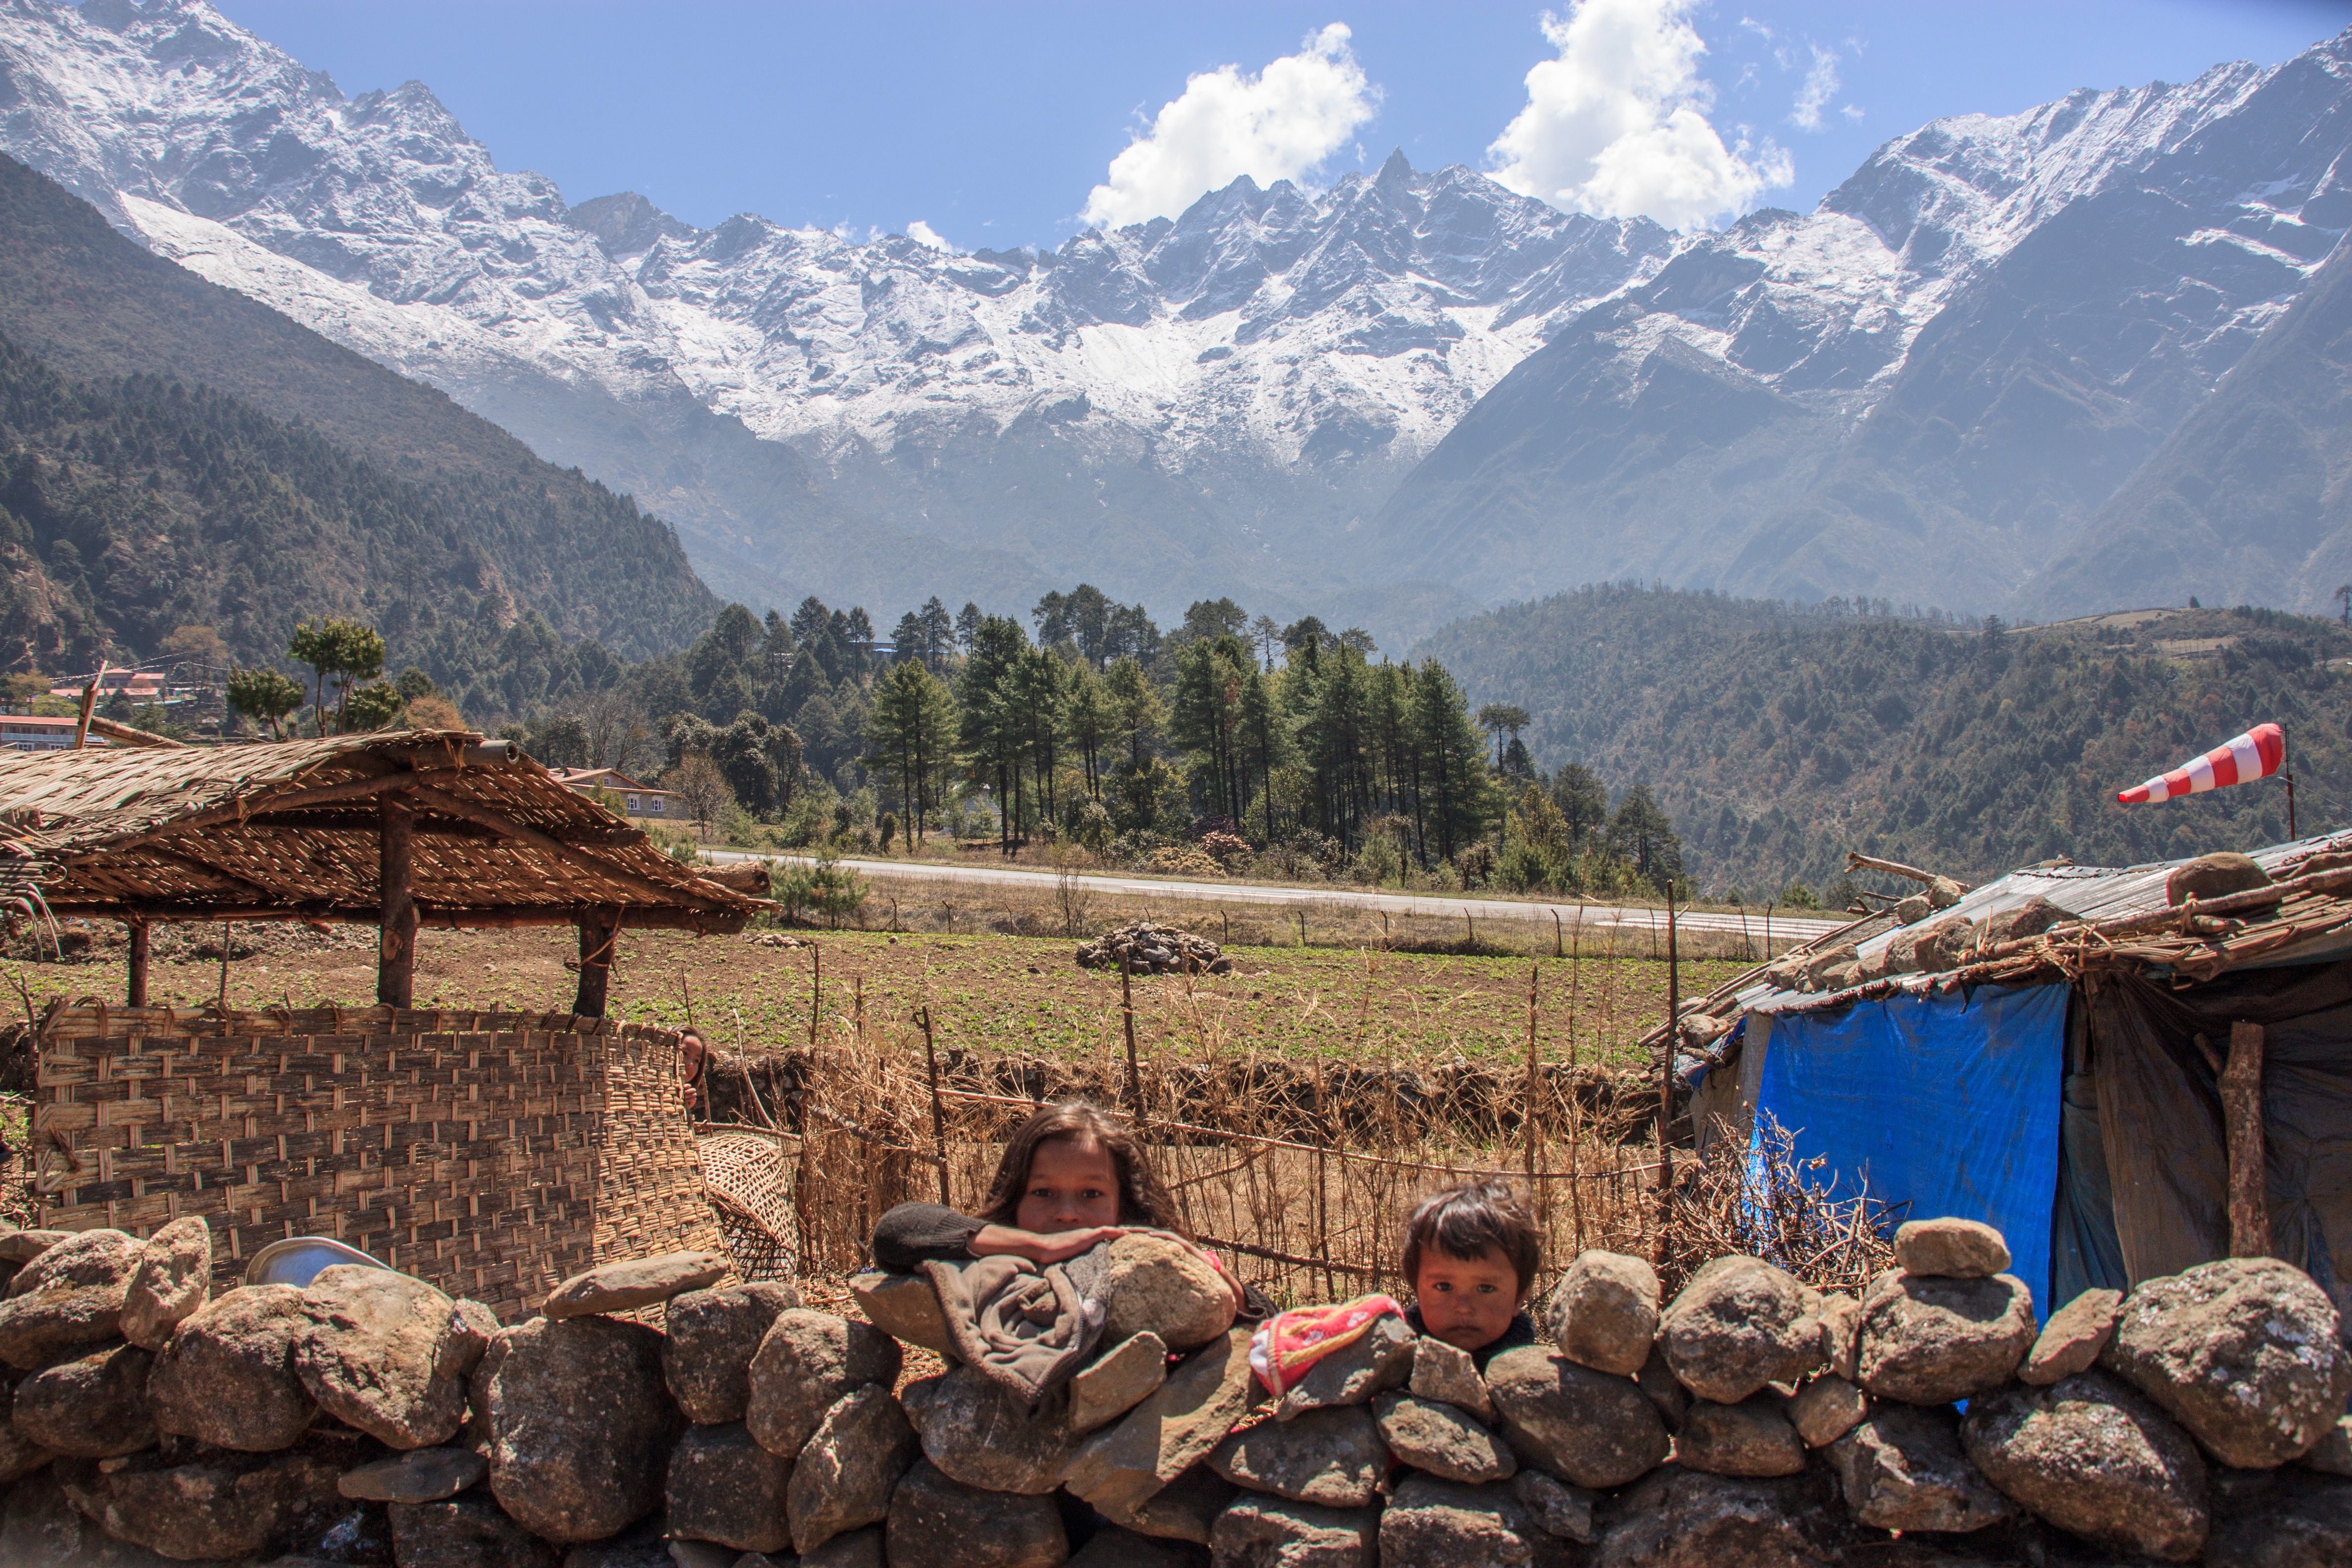 Children and the runway at Lukla with the Zatwa La (pass) in the background.